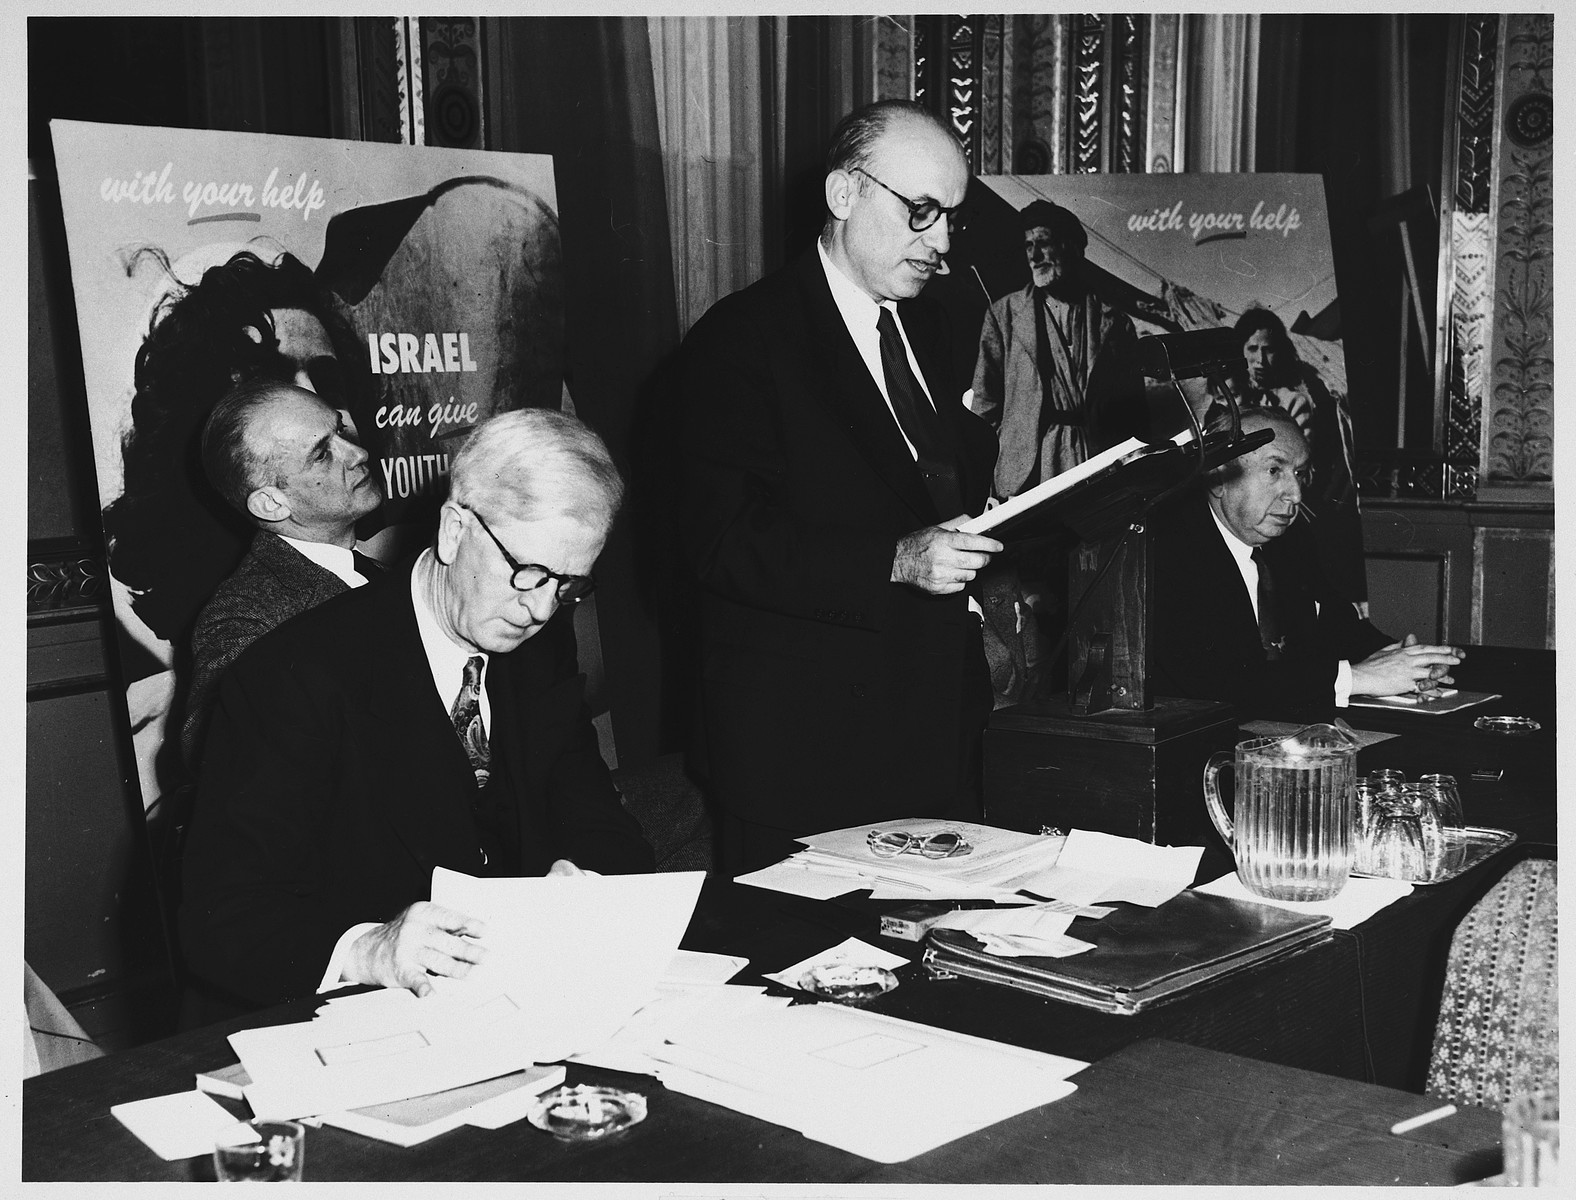 James G. McDonald (seated, left), Chairman of the Advisory Council, Development Corporation for Israel, looks through his papers while attending a conference about fundraising for the State of Israel.